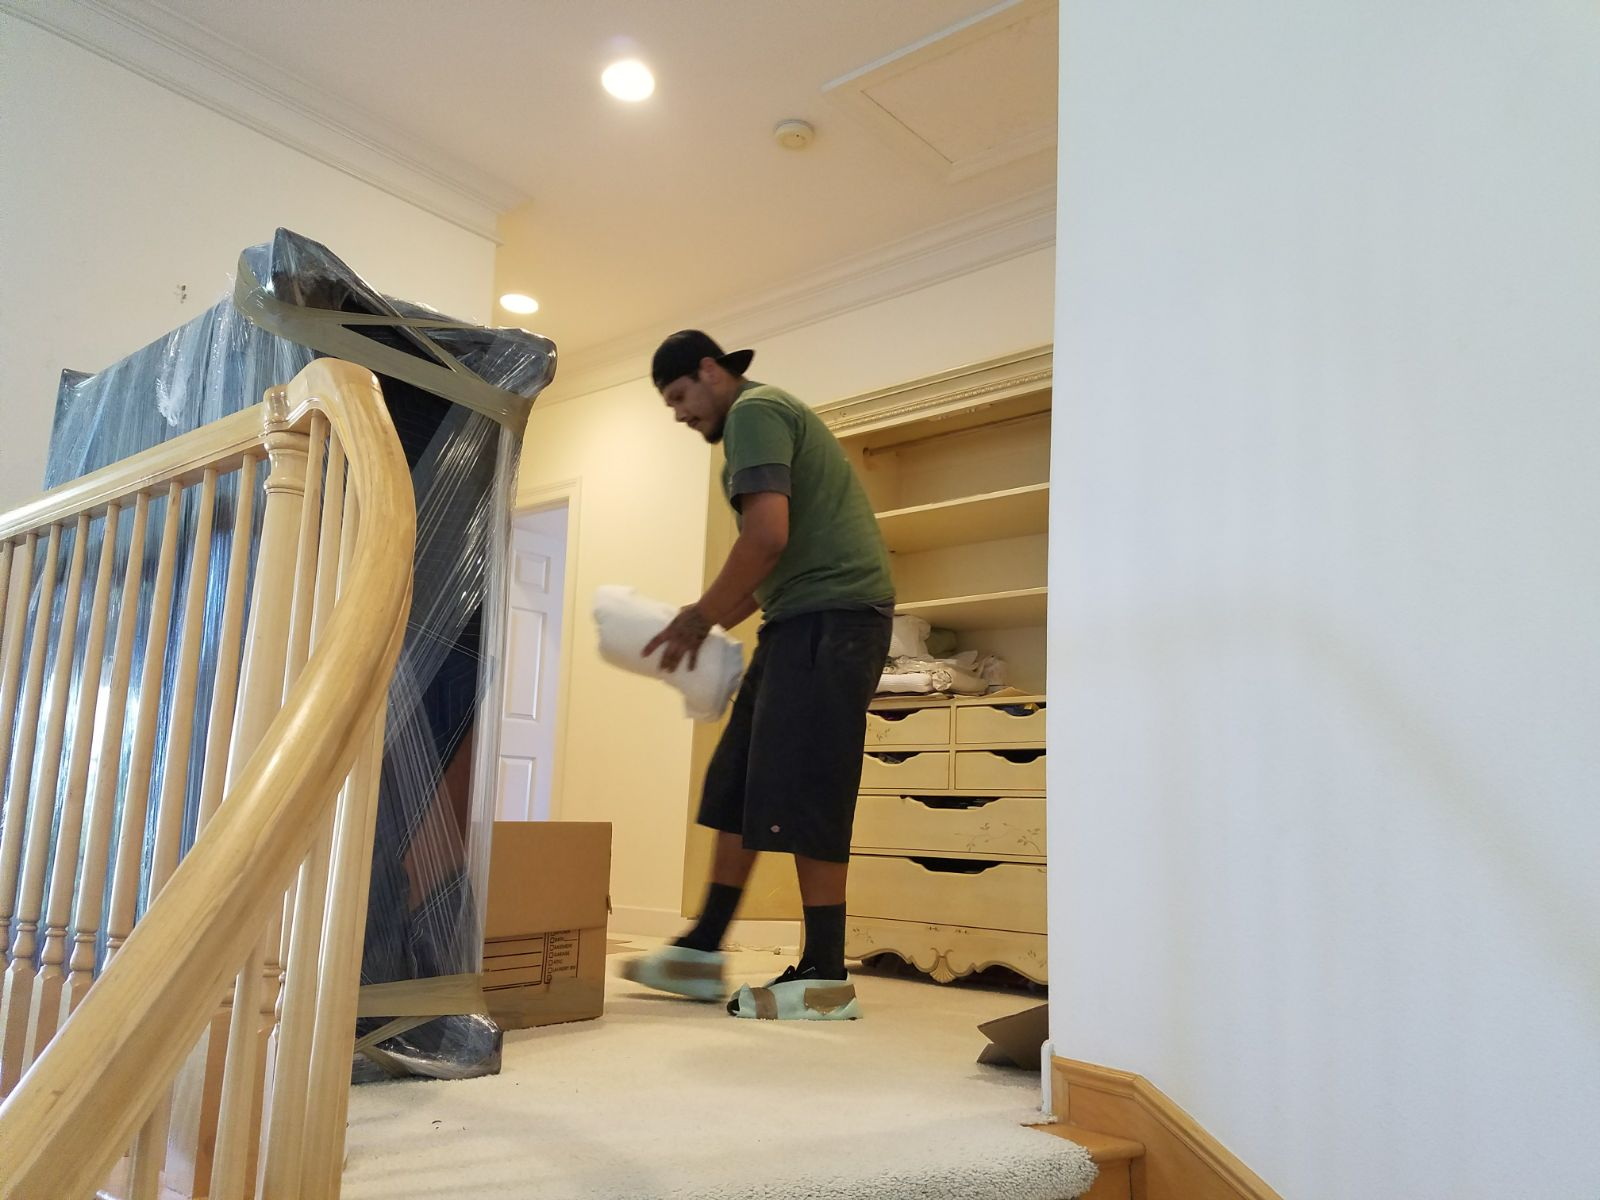 Our goal here in Family Moving Services is to give a good services by taking care of every single detail.